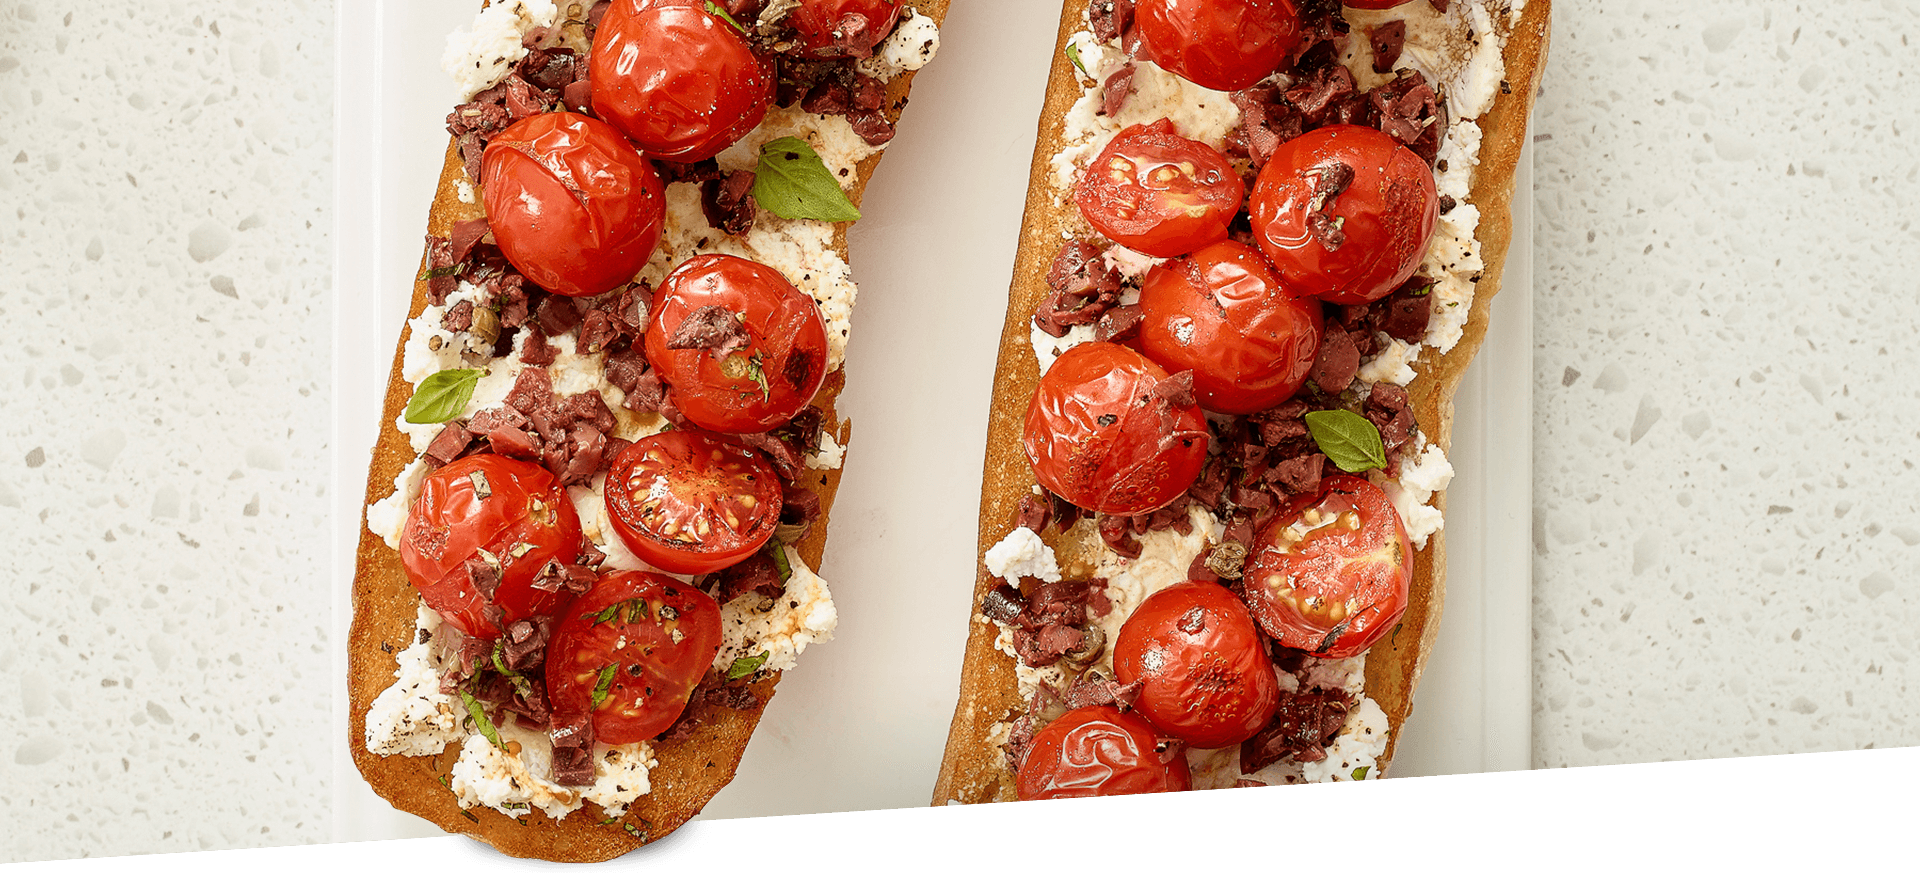 Cherry Tomato Bruschetta header BG